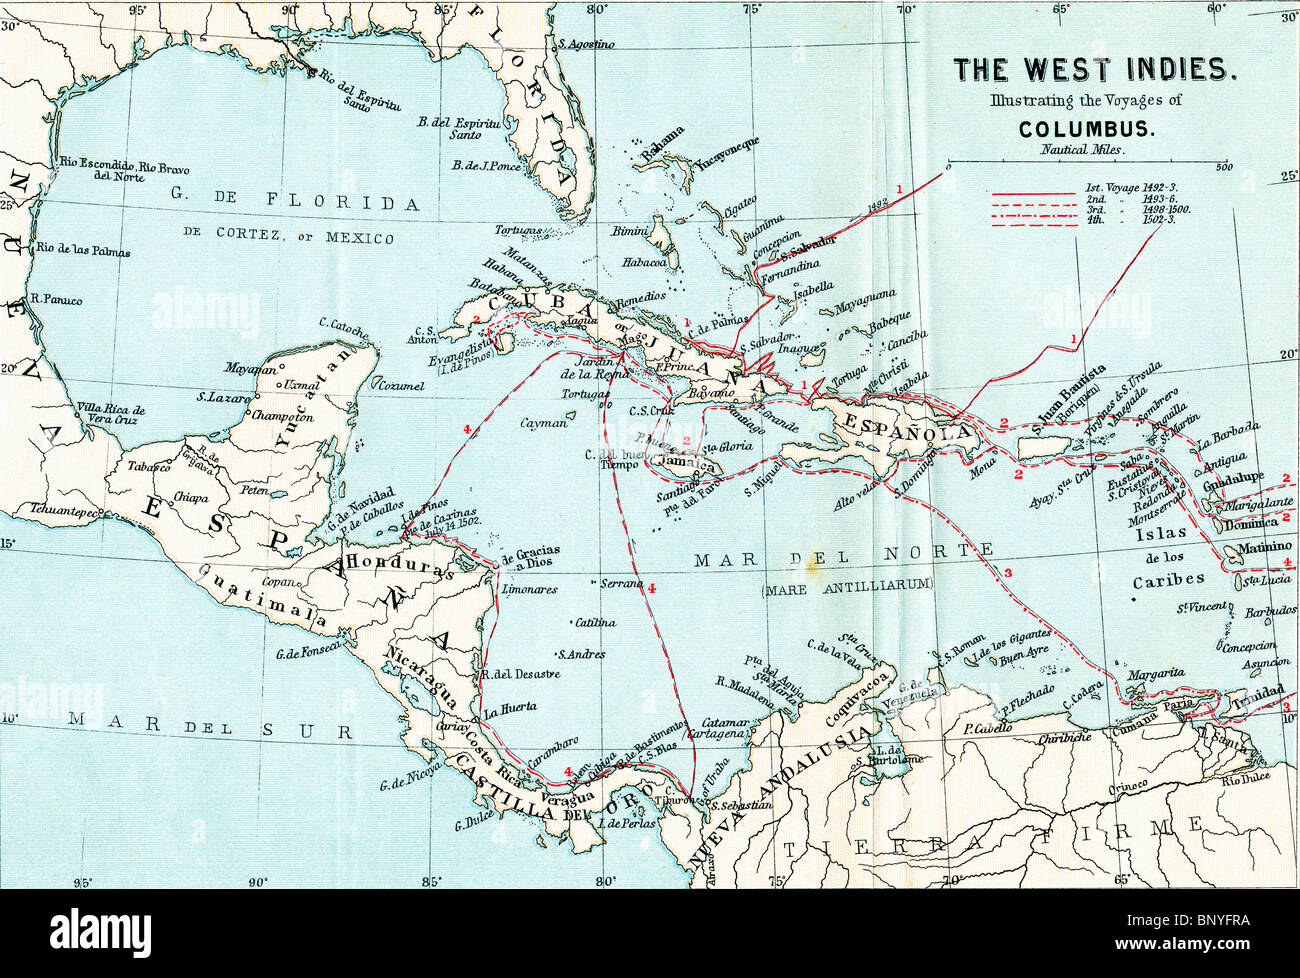 Map Of The West Indies Illustrating The Voyages Of